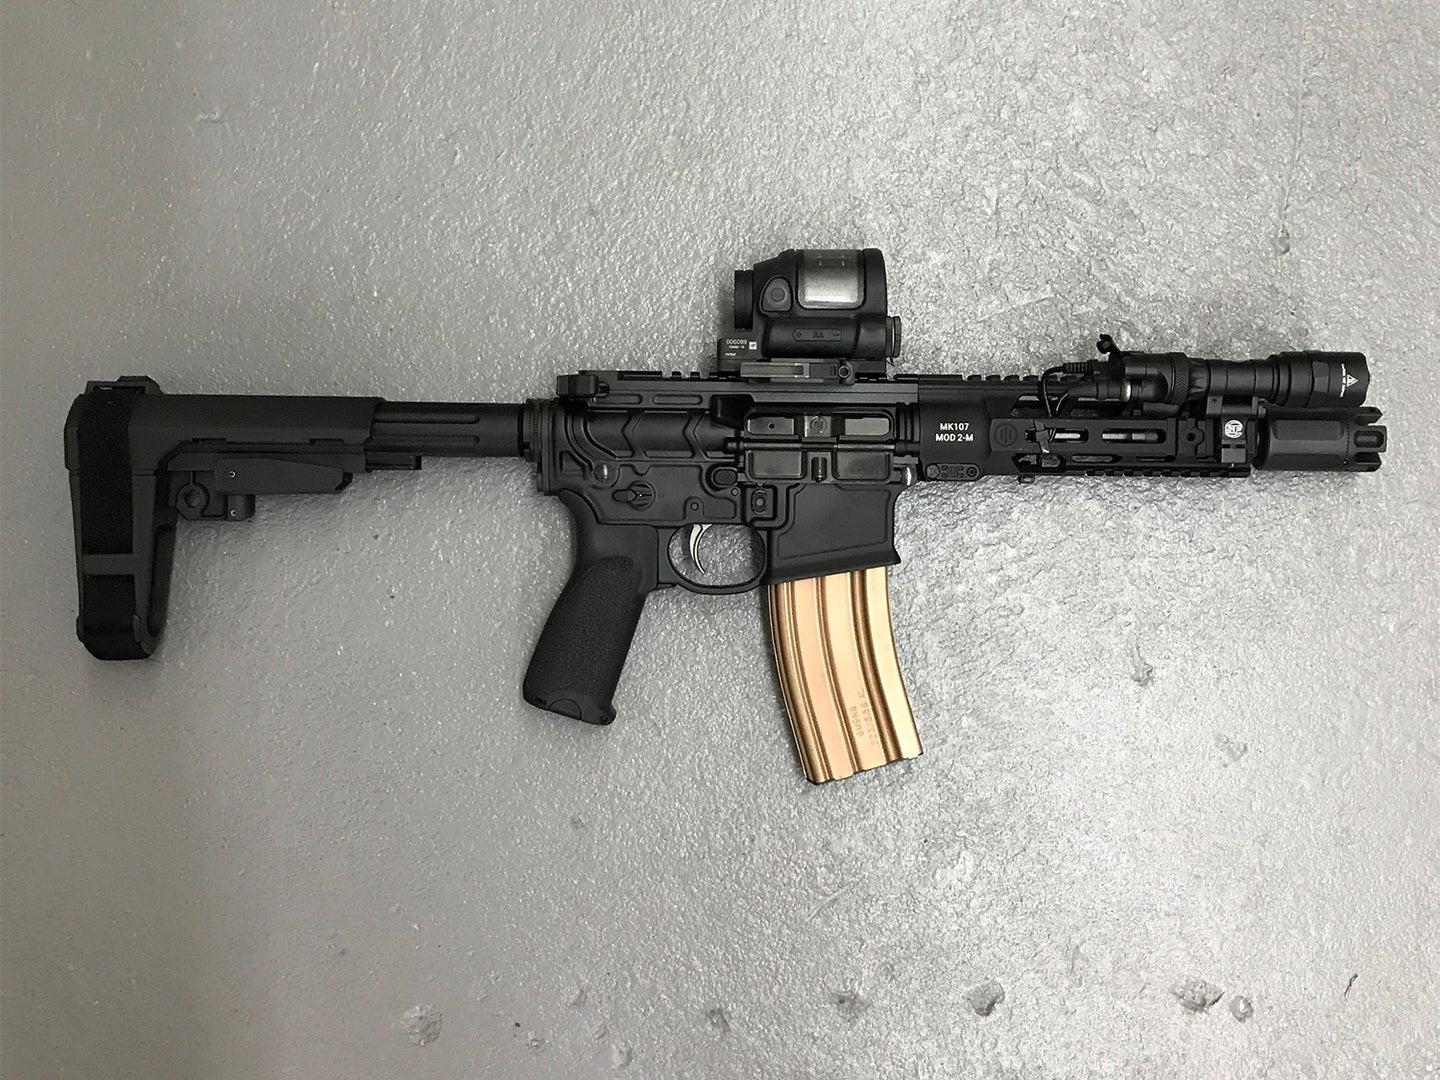 A Primary Weapons sSystem MK107 Mod 2-M rifle.